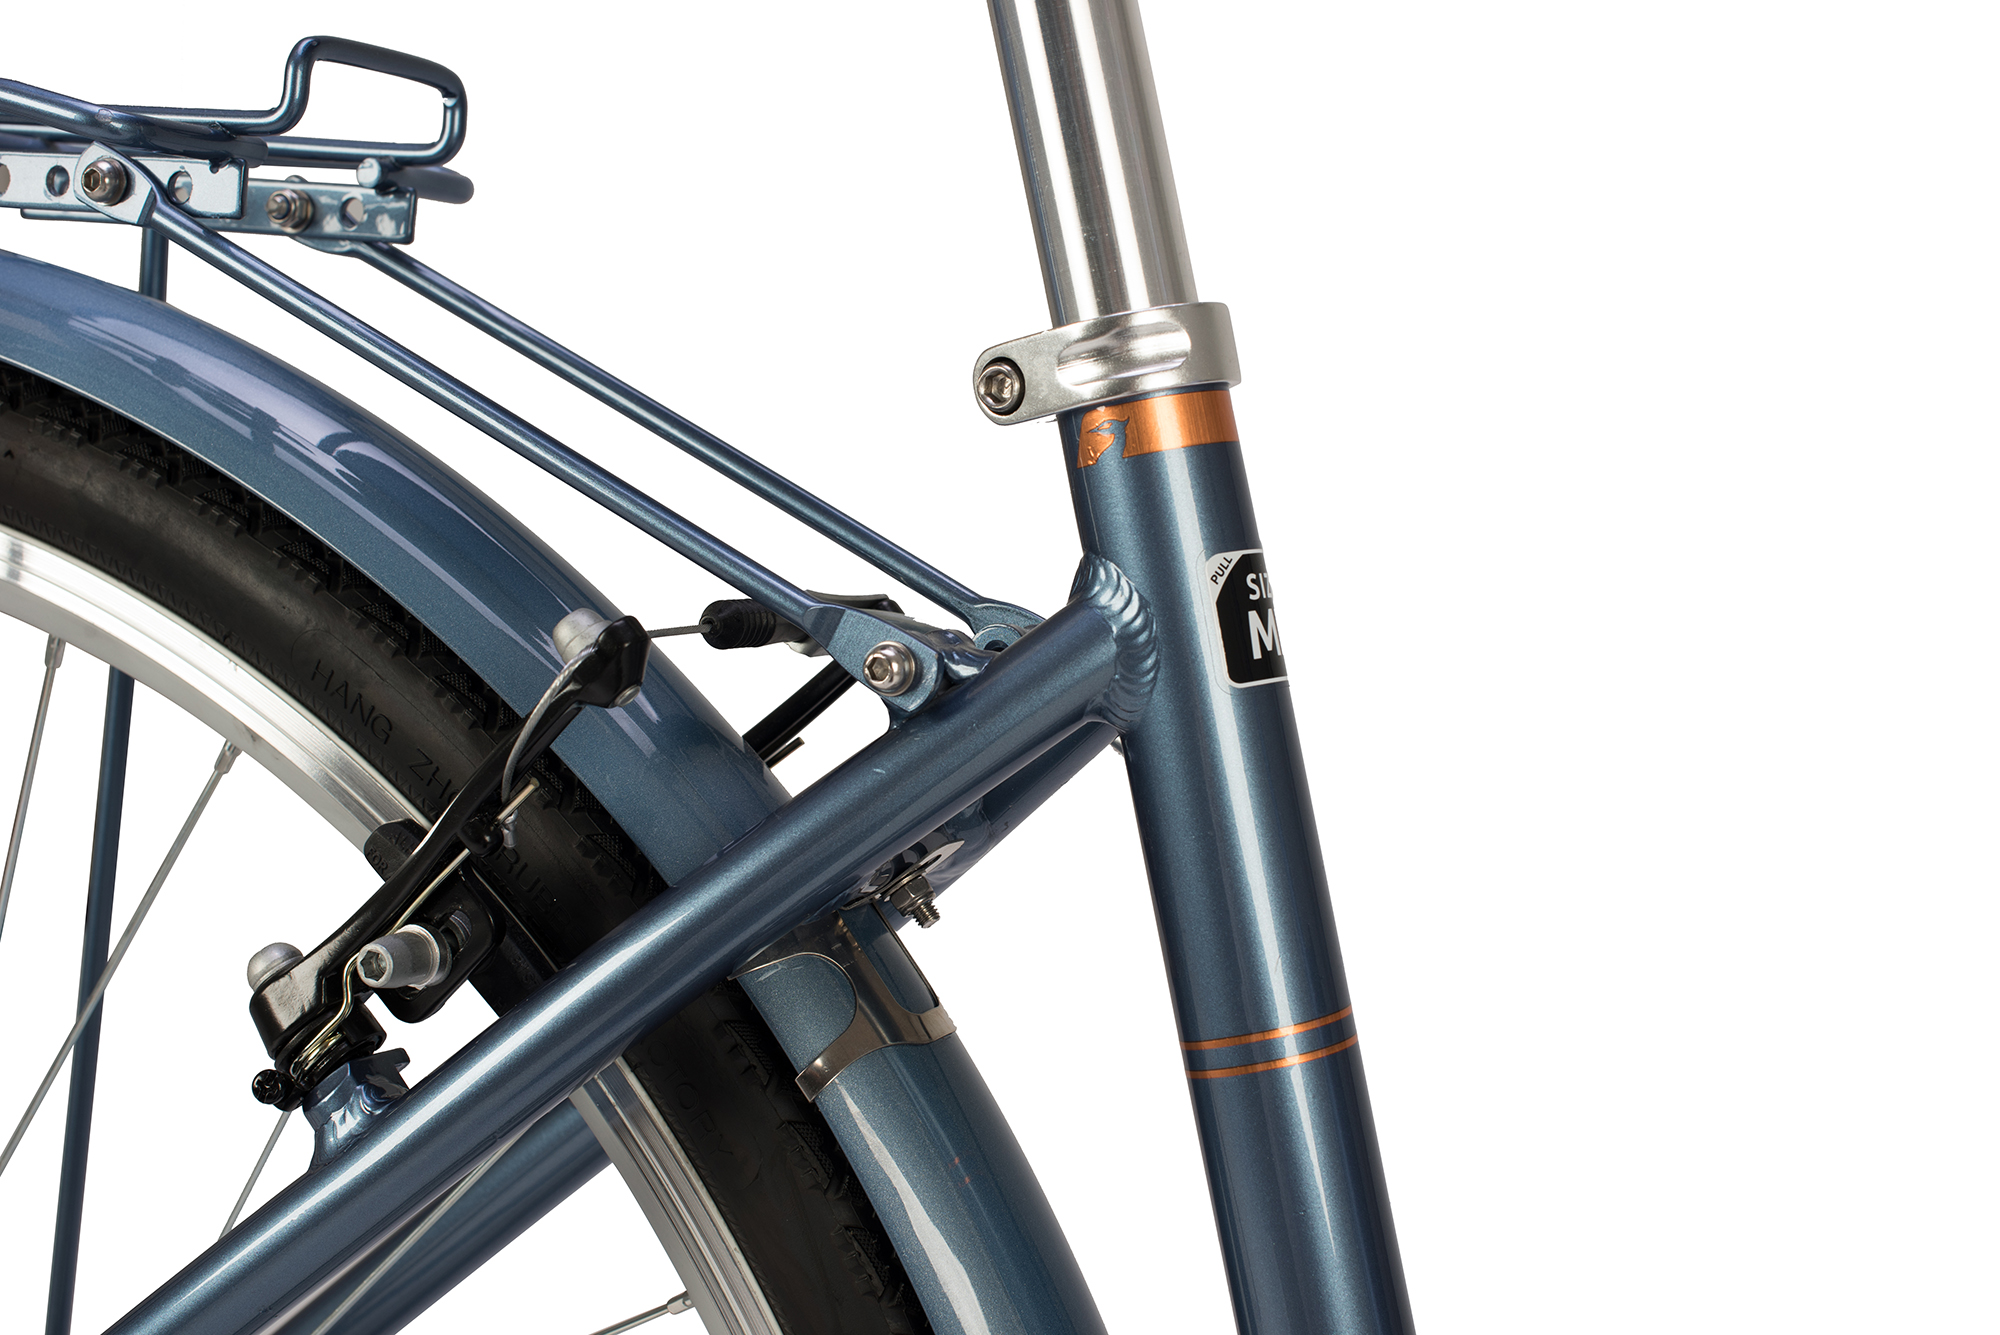 View of the frame and seat post on the Raleigh Pioneer low step bike in grey